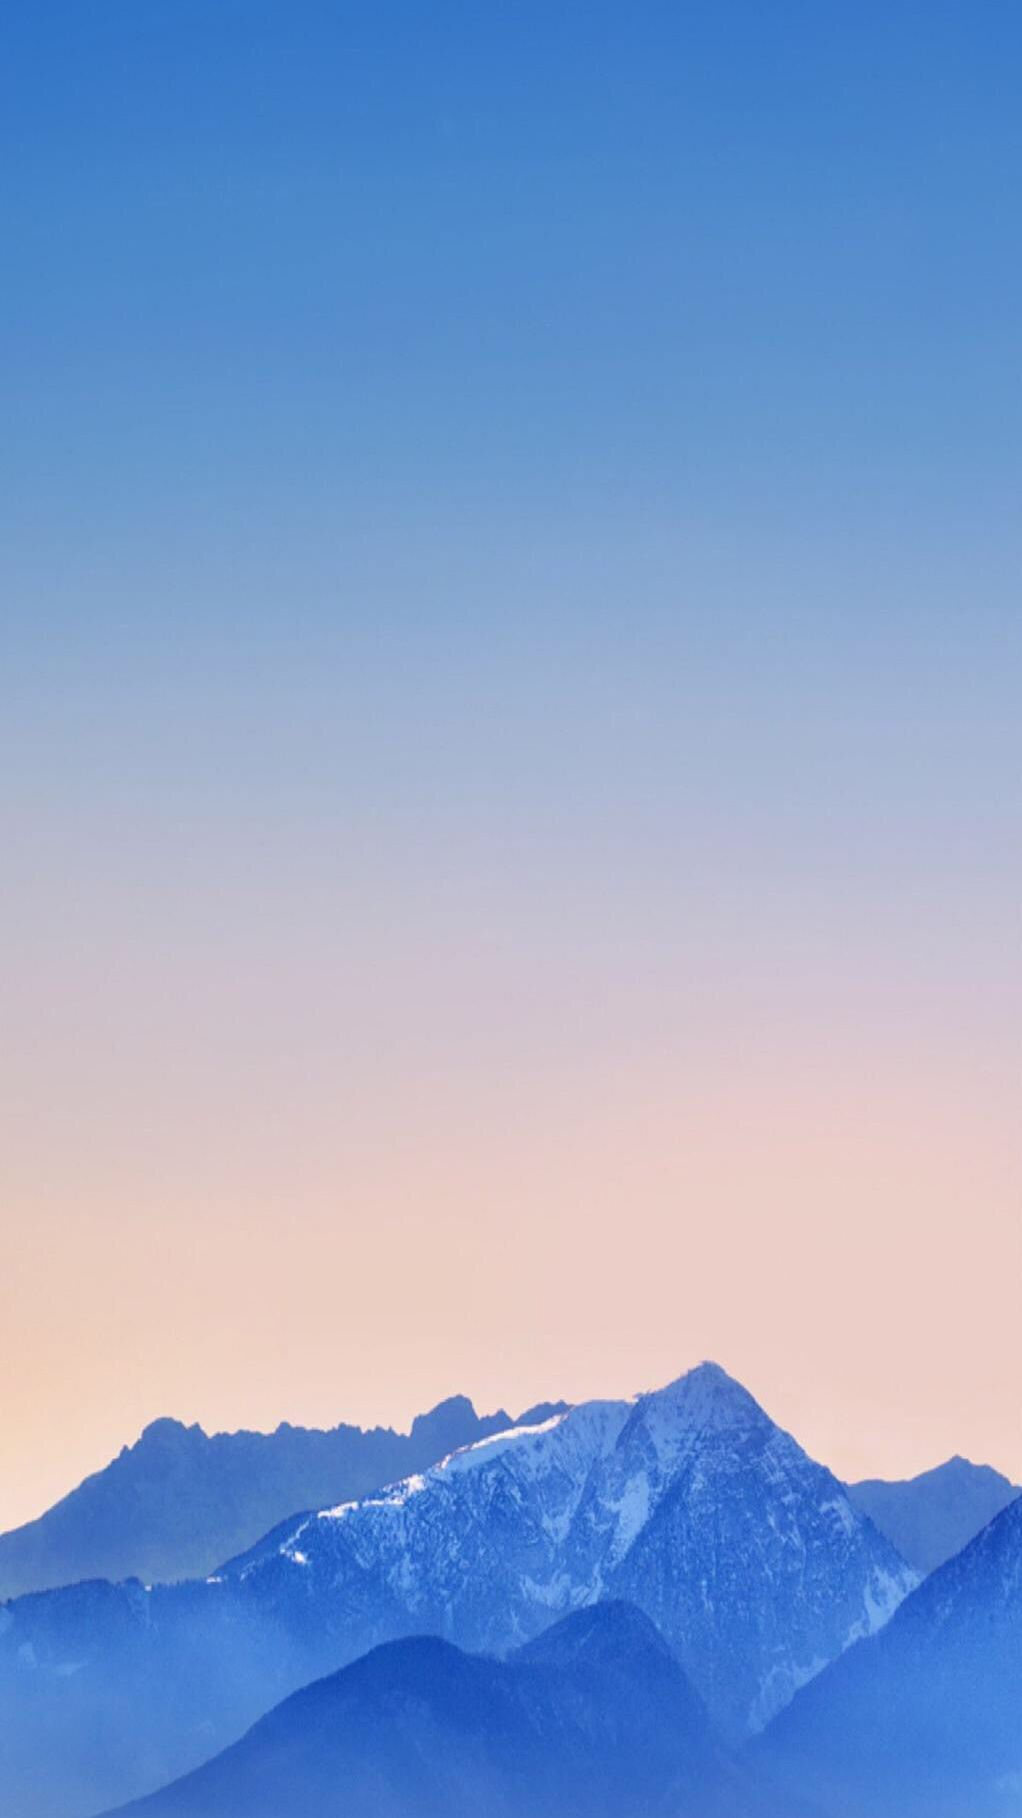 Download Most Downloaded Wallpaper for iPhone 8 / 8 Plus Today